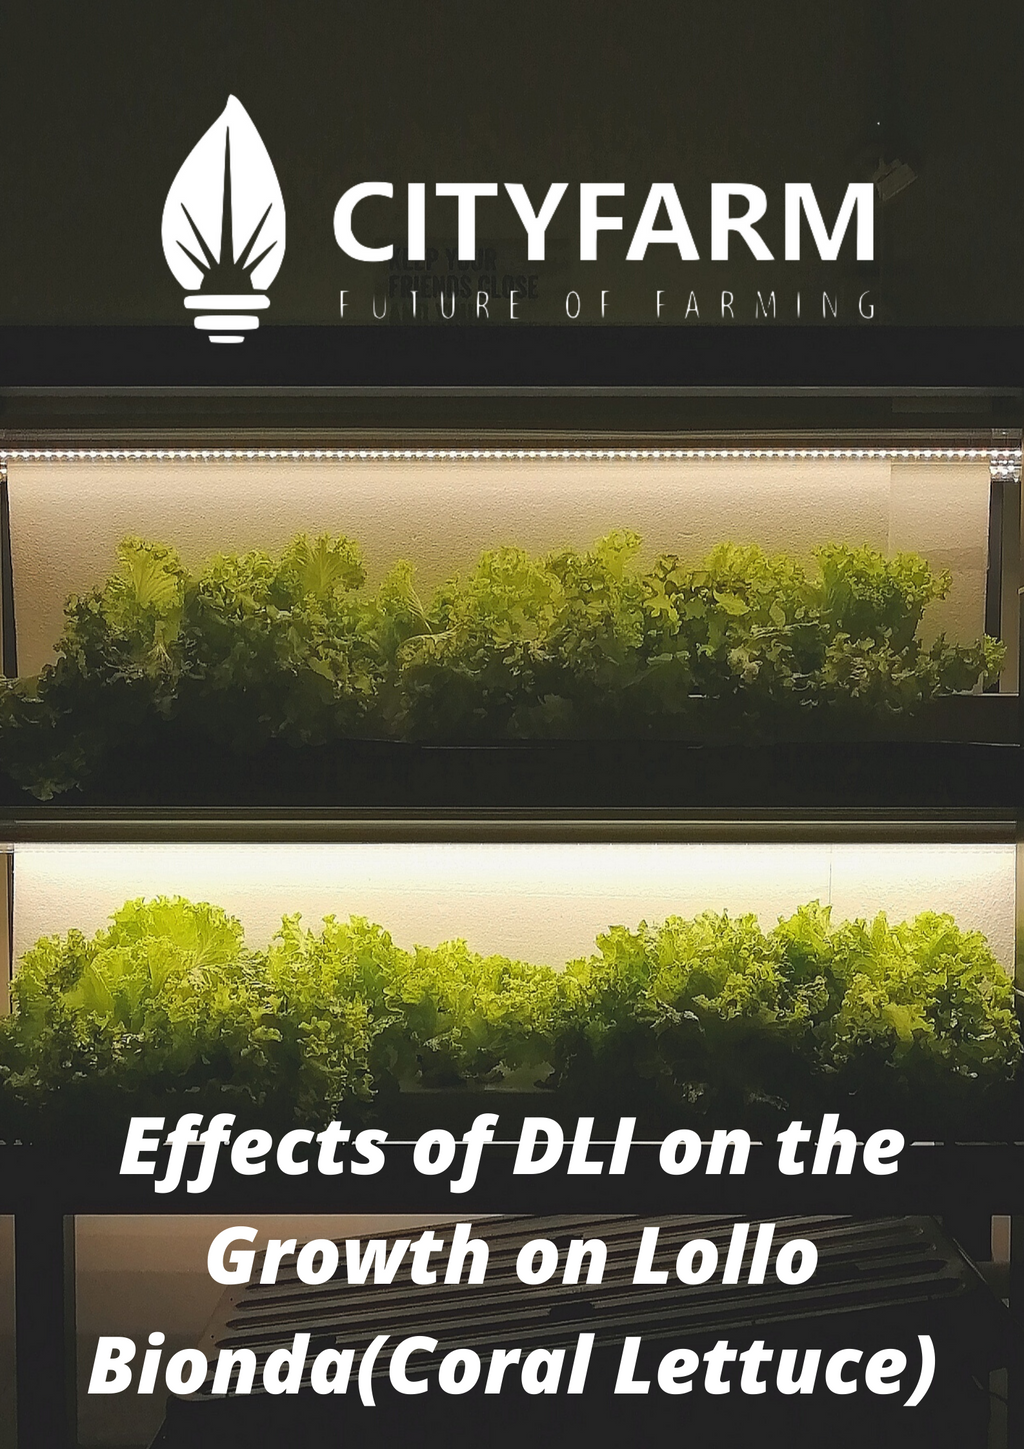 [Research] Effects of DLI on the Growth of Lollo Bionda(Coral Lettuce)